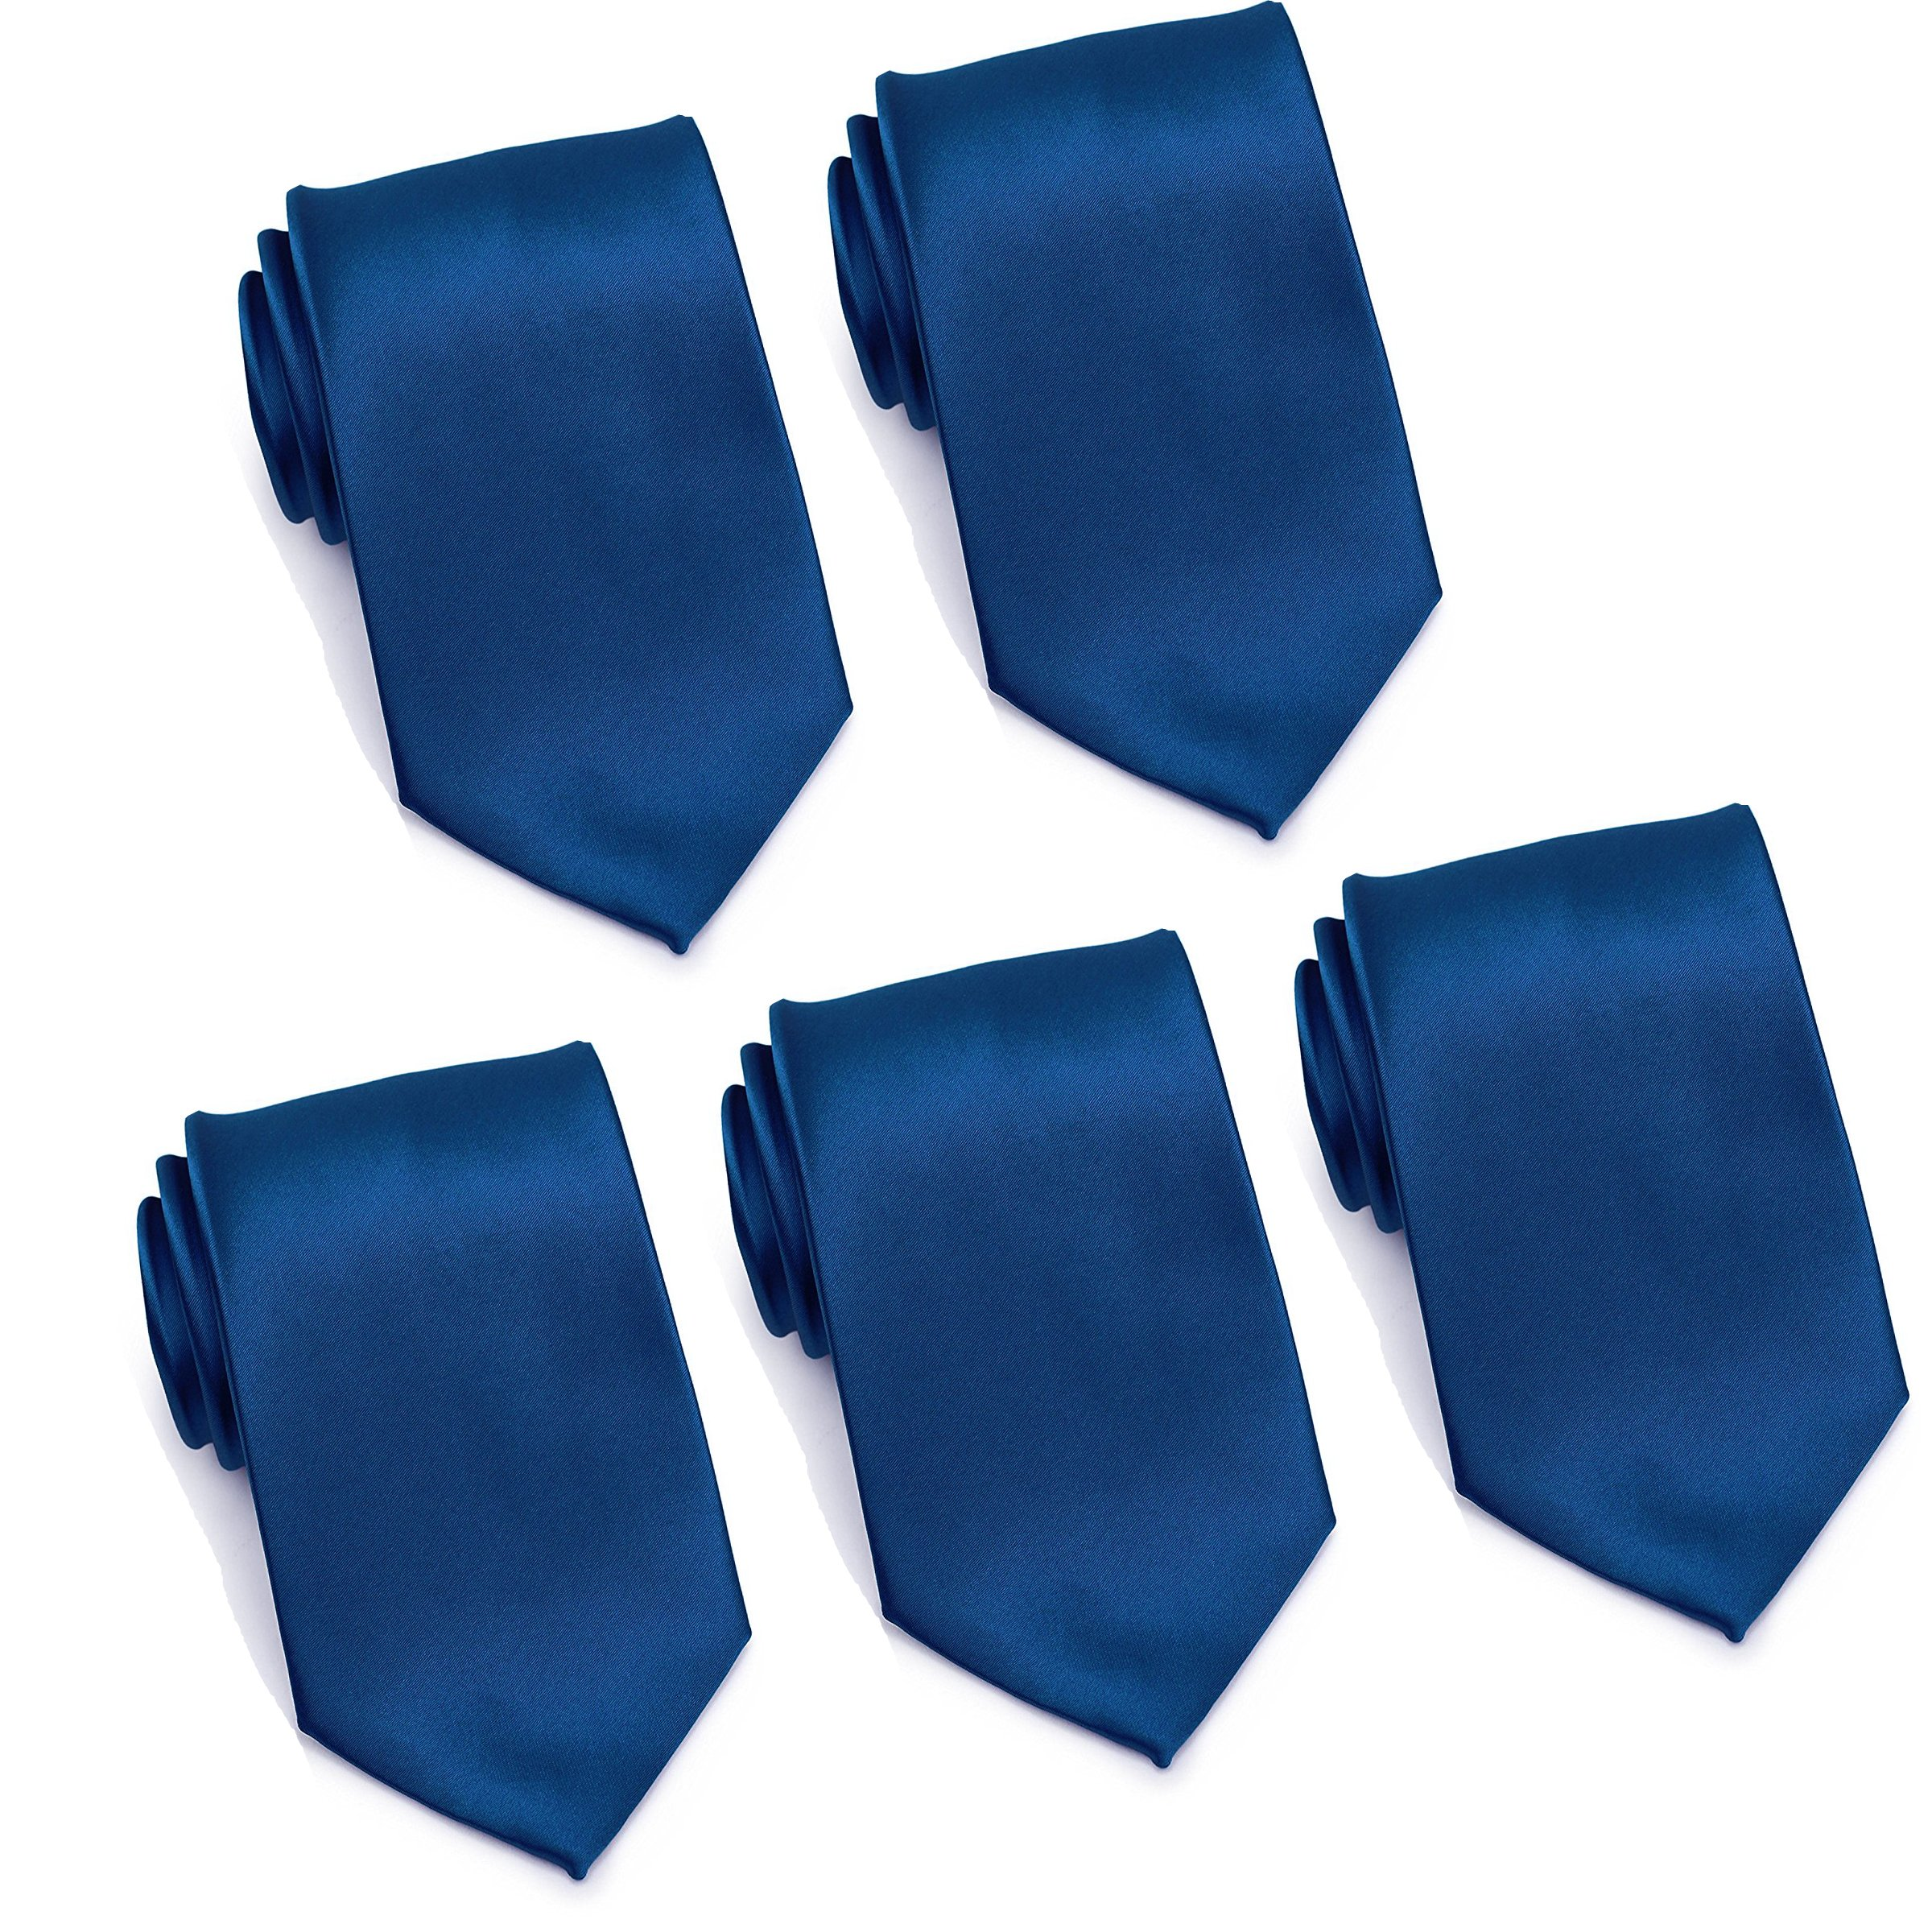 Mens Formal Tie Wholesale Lot of 5 Mens Solid Color Wedding Ties 3.5'' Satin Finish (Navy Blue)